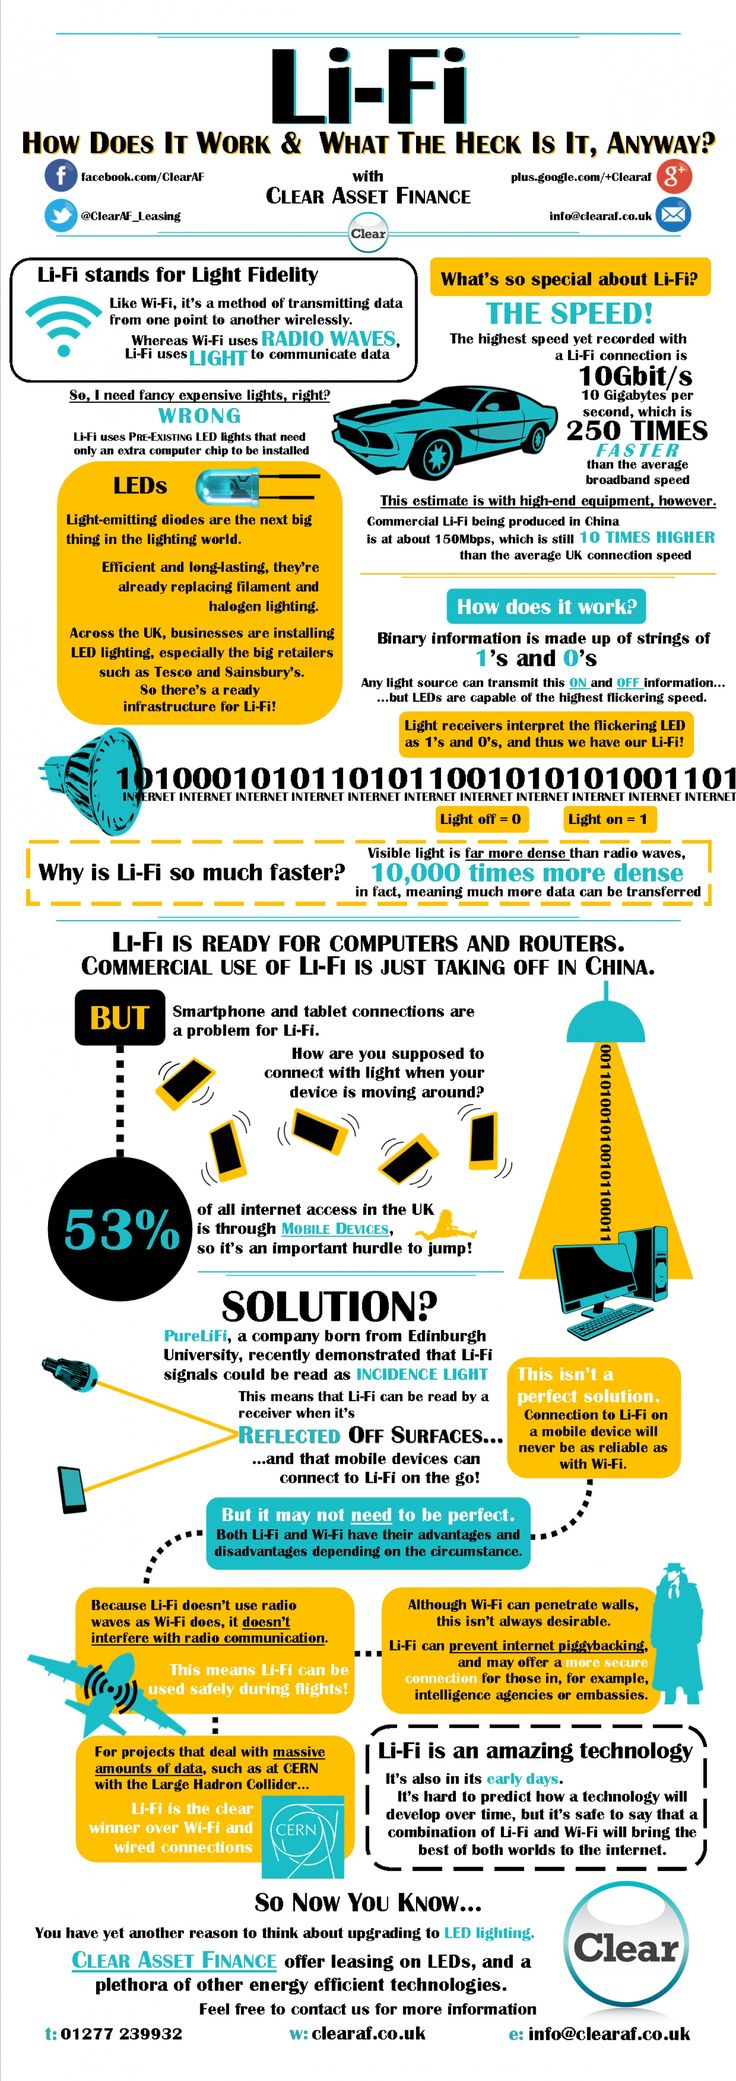 Did  you see our article on Li-Fi on Facebook earlier? Here's an infographic explaining how Li-Fi transmits data through light.